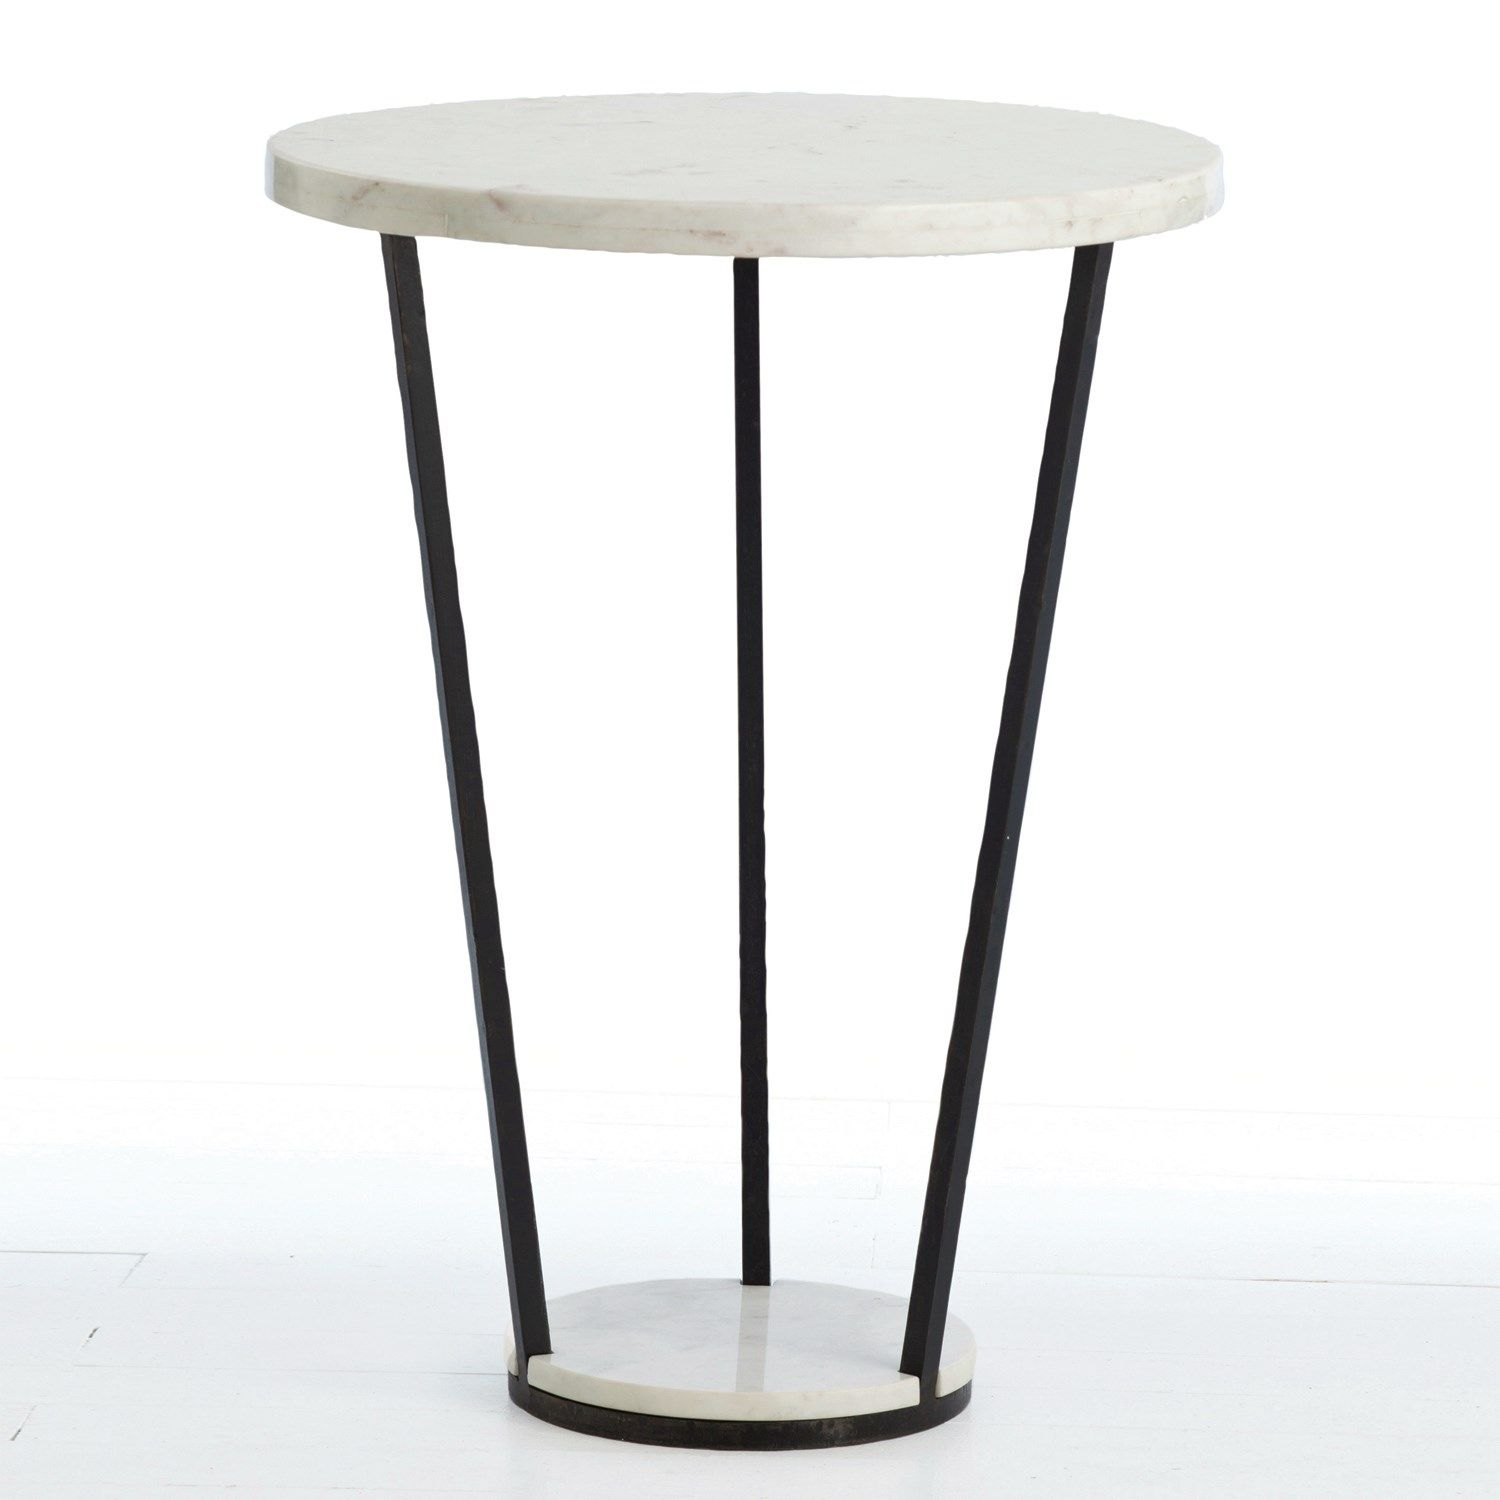 Arteriors petra side table furniture p pinterest floor lamp arteriors petra side table aloadofball Choice Image